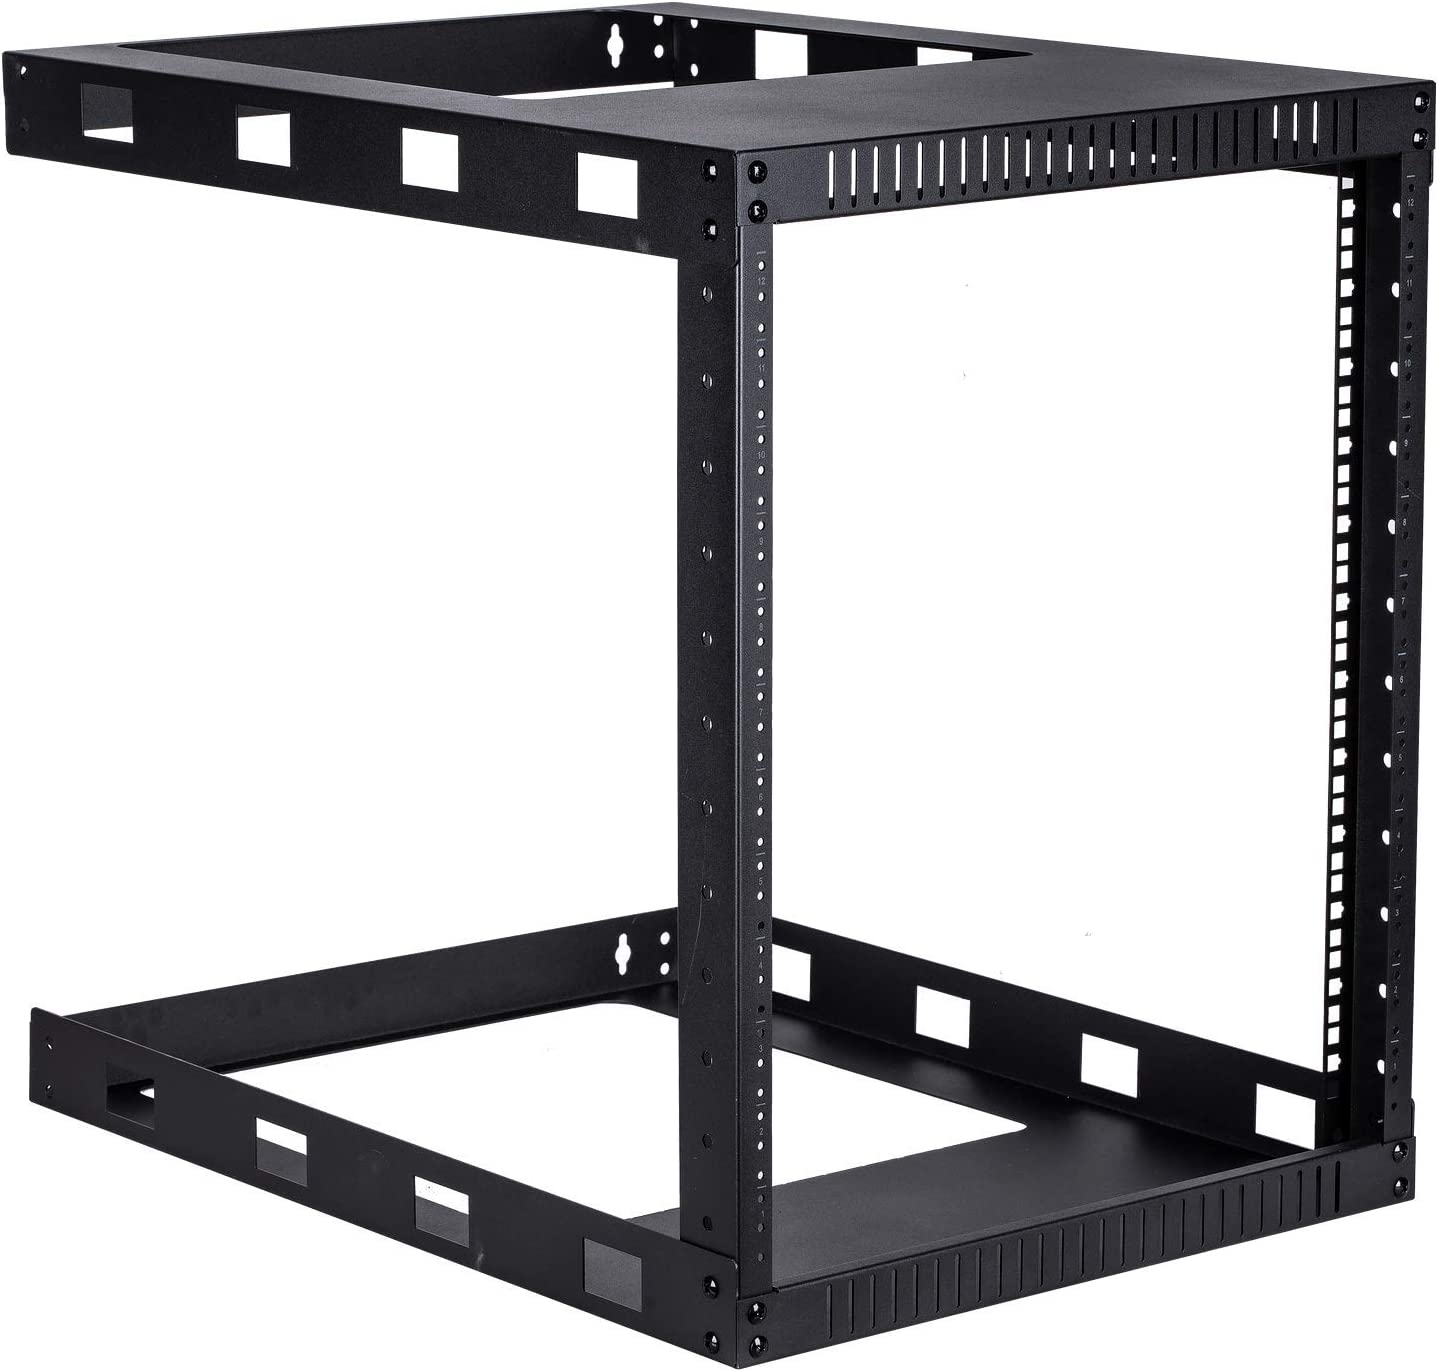 Kenuco Black 12U Wall Mount Open Frame Steel Network Equipment Rack 24 Inch Deep - Black - 12U Deep - W19'' x D24'' x H24.5'' (DEEP-12U)